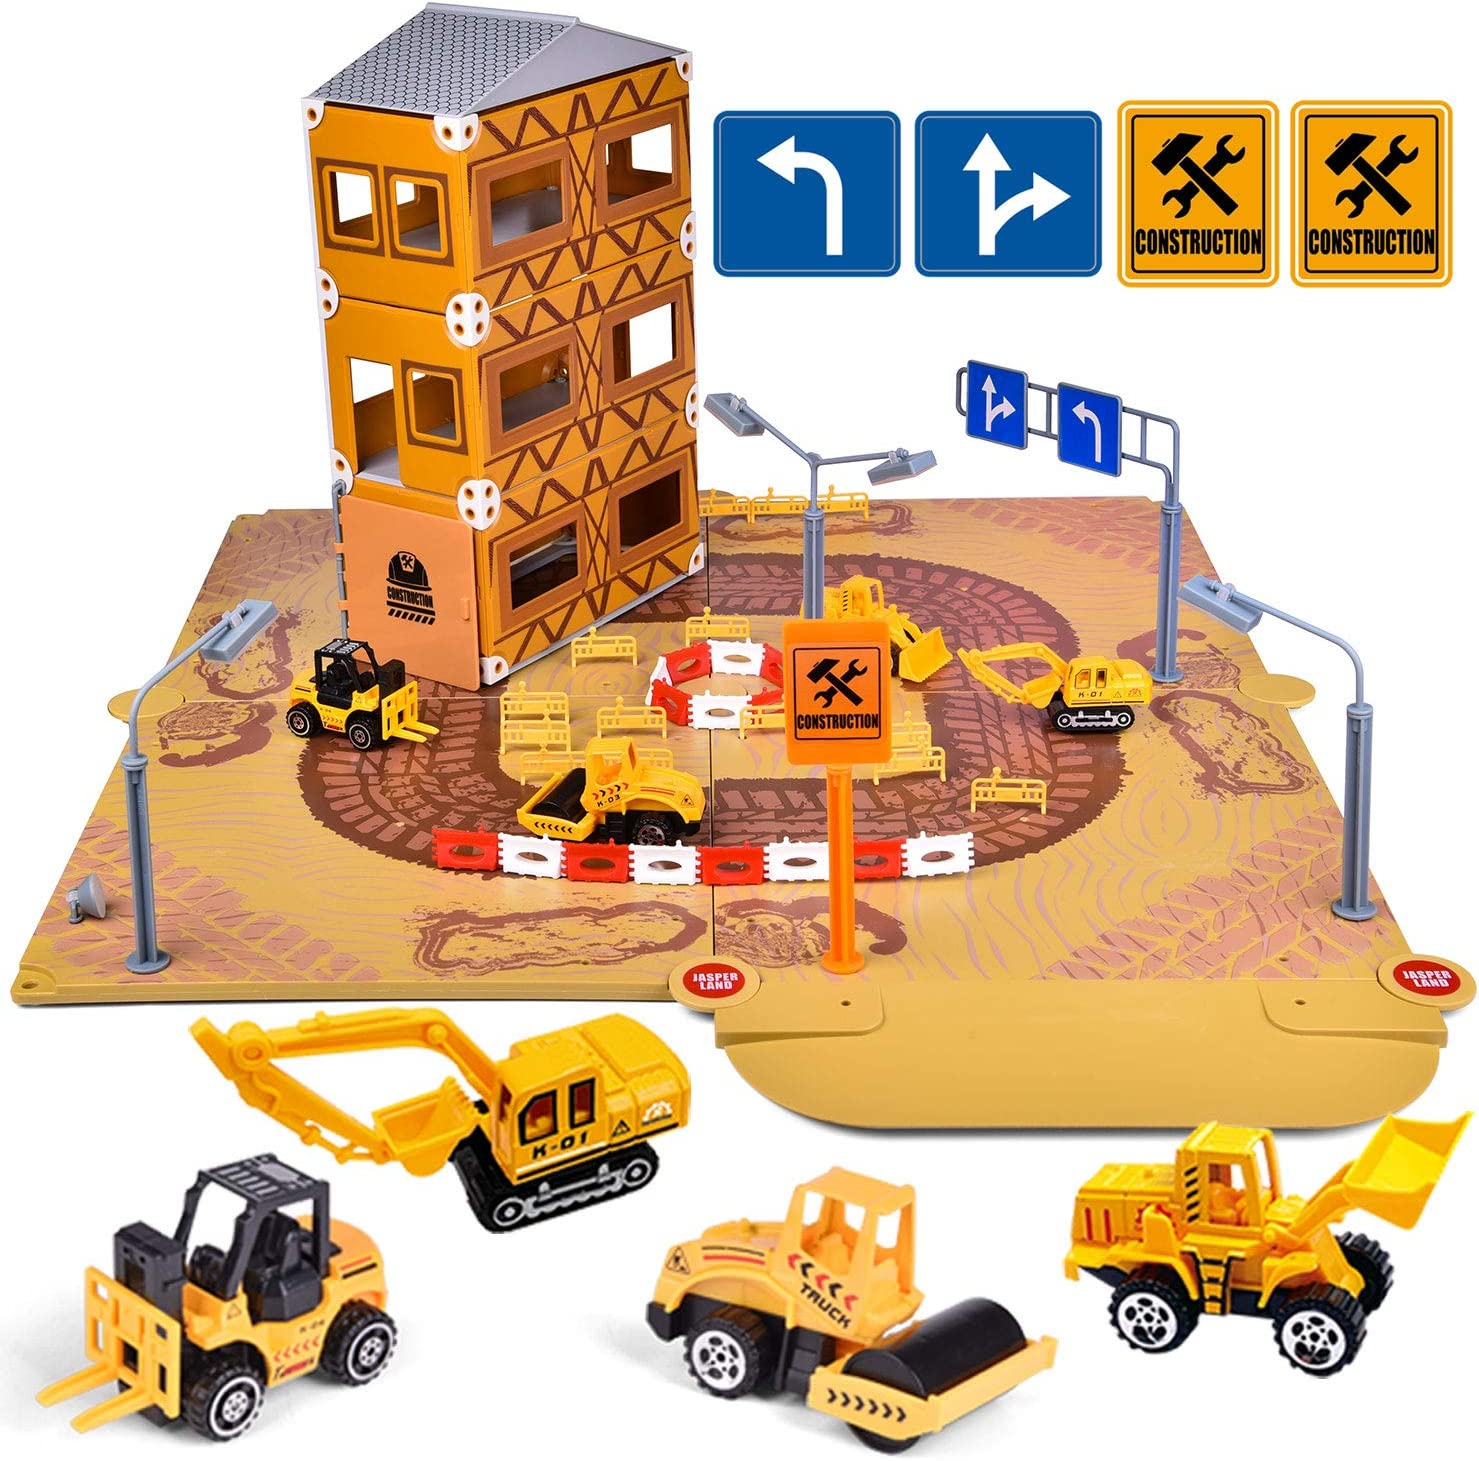 FunLittleToys Construction Site Toys Building Toy with 4 Pull Back Die Cast Construction Trucks and Street Signs for Boys